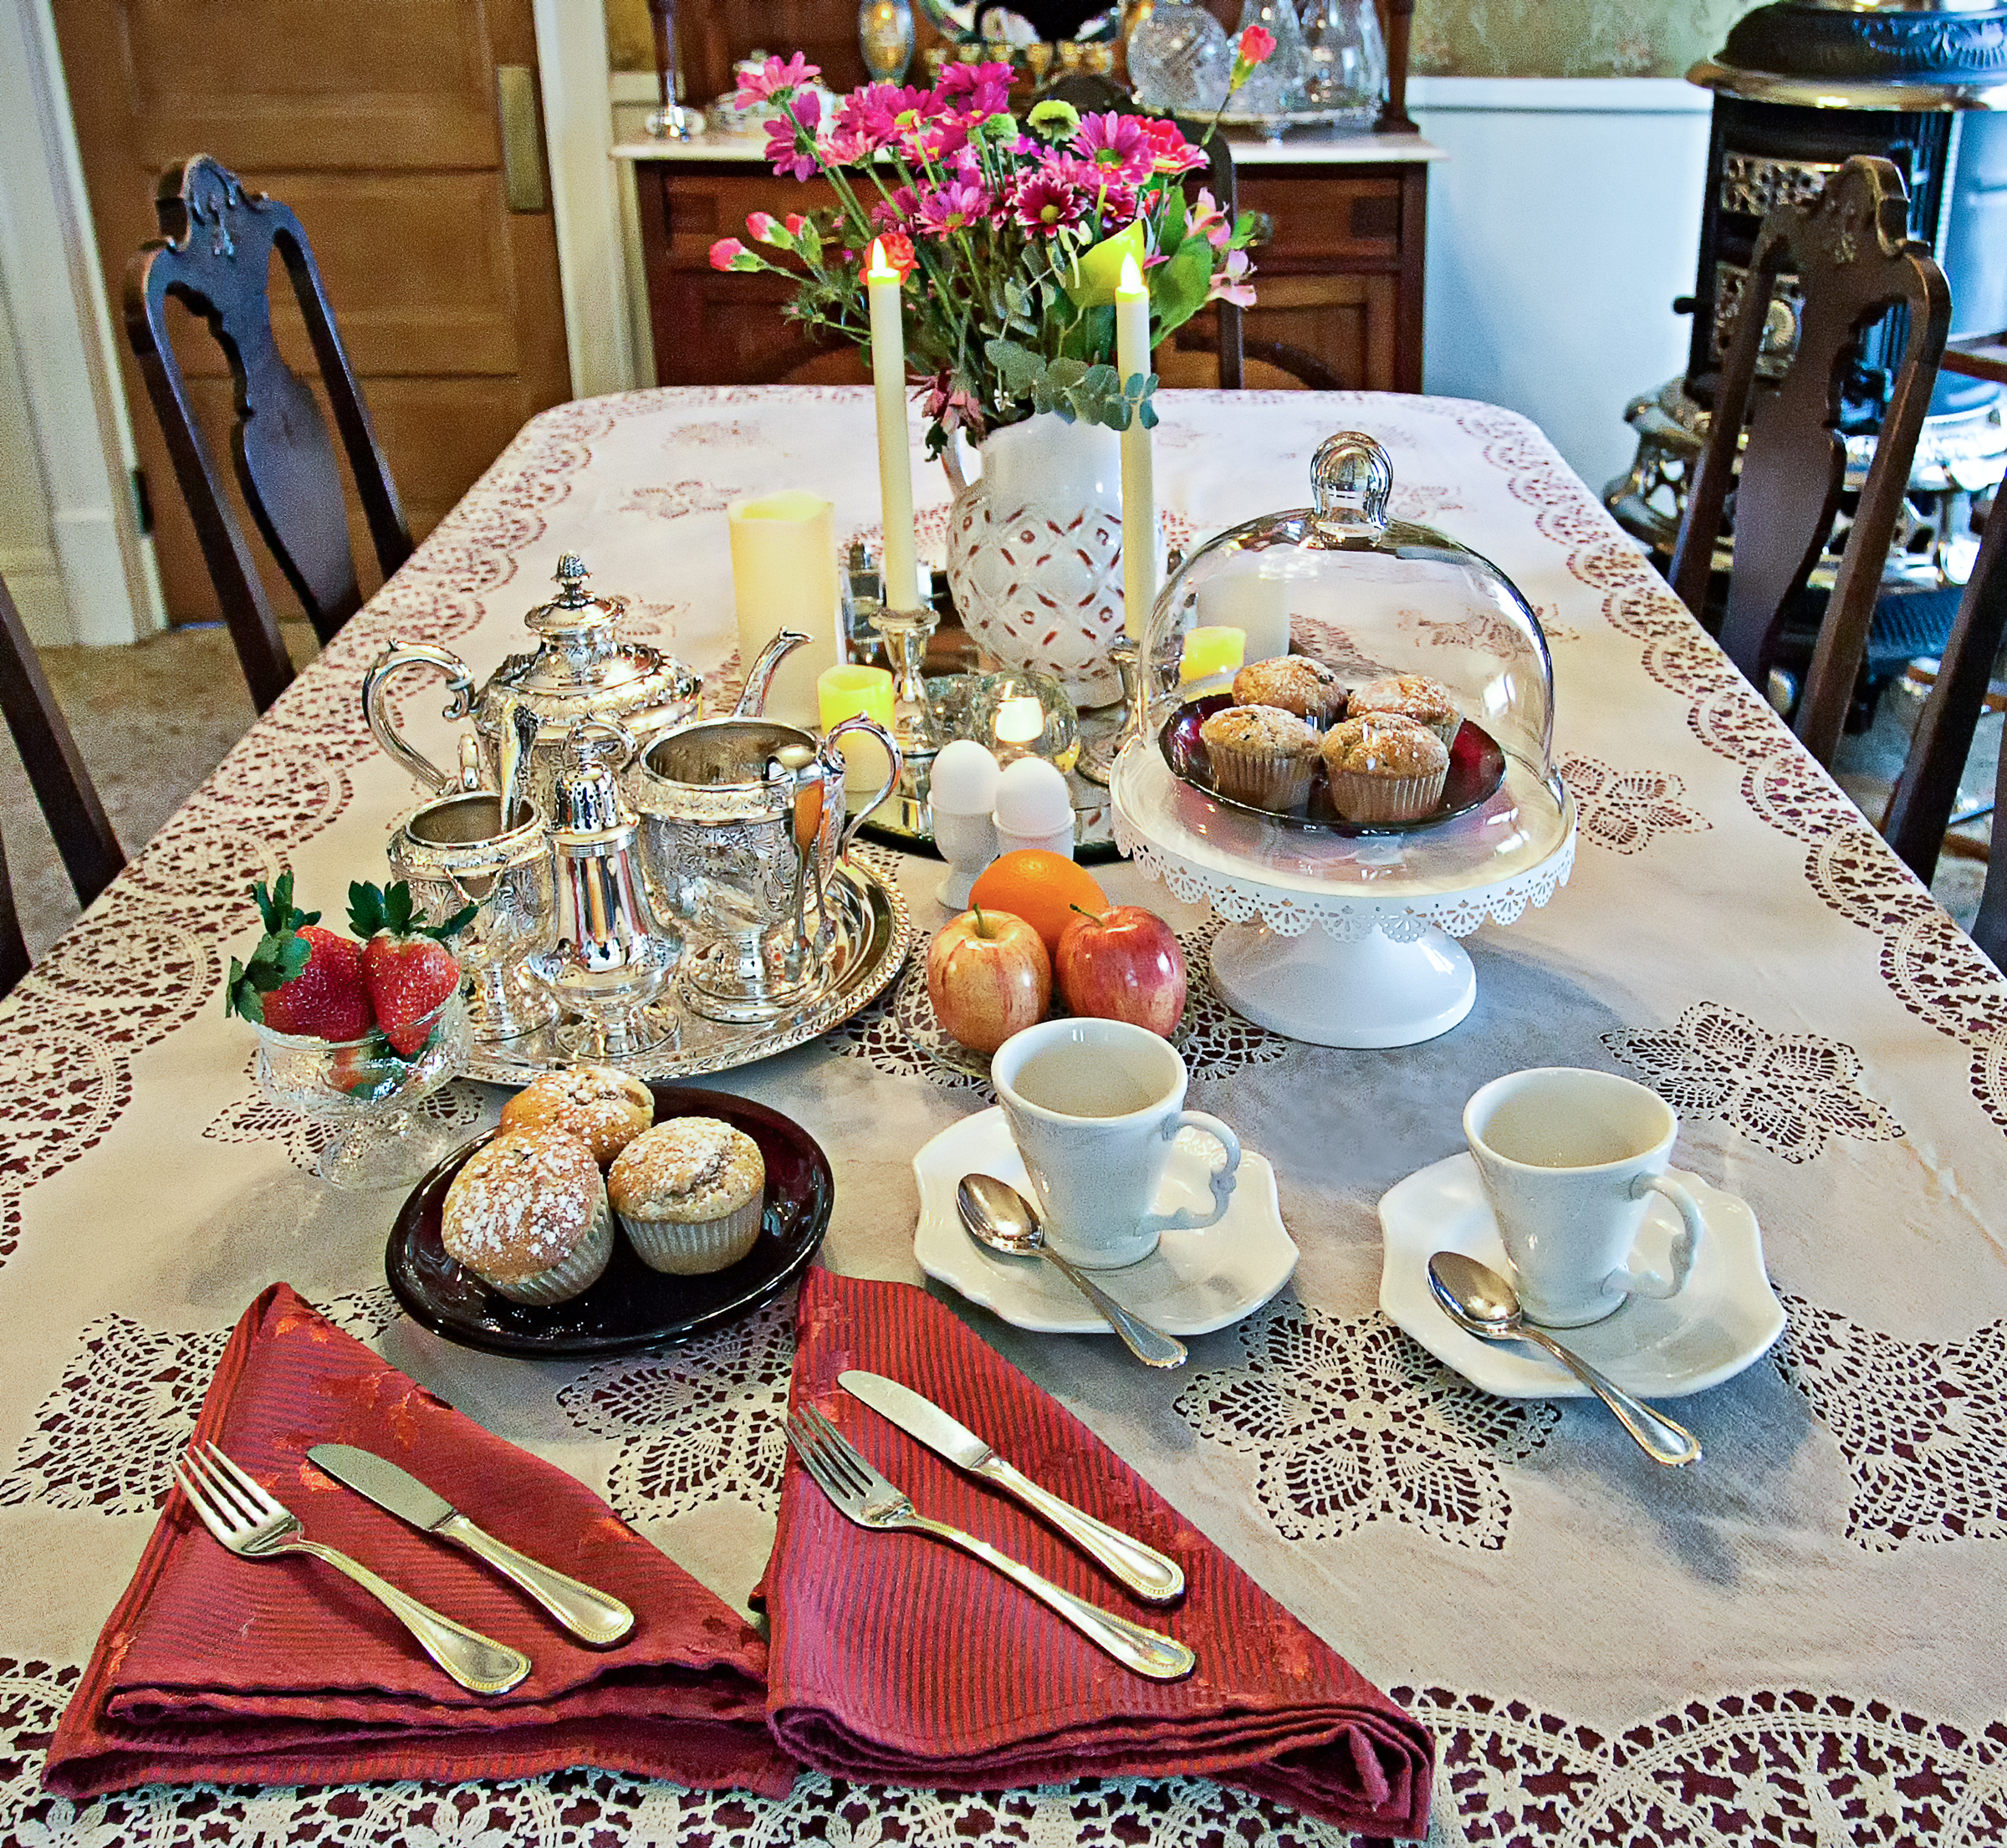 Picture of the breakfast table with food and flowers in the middle.